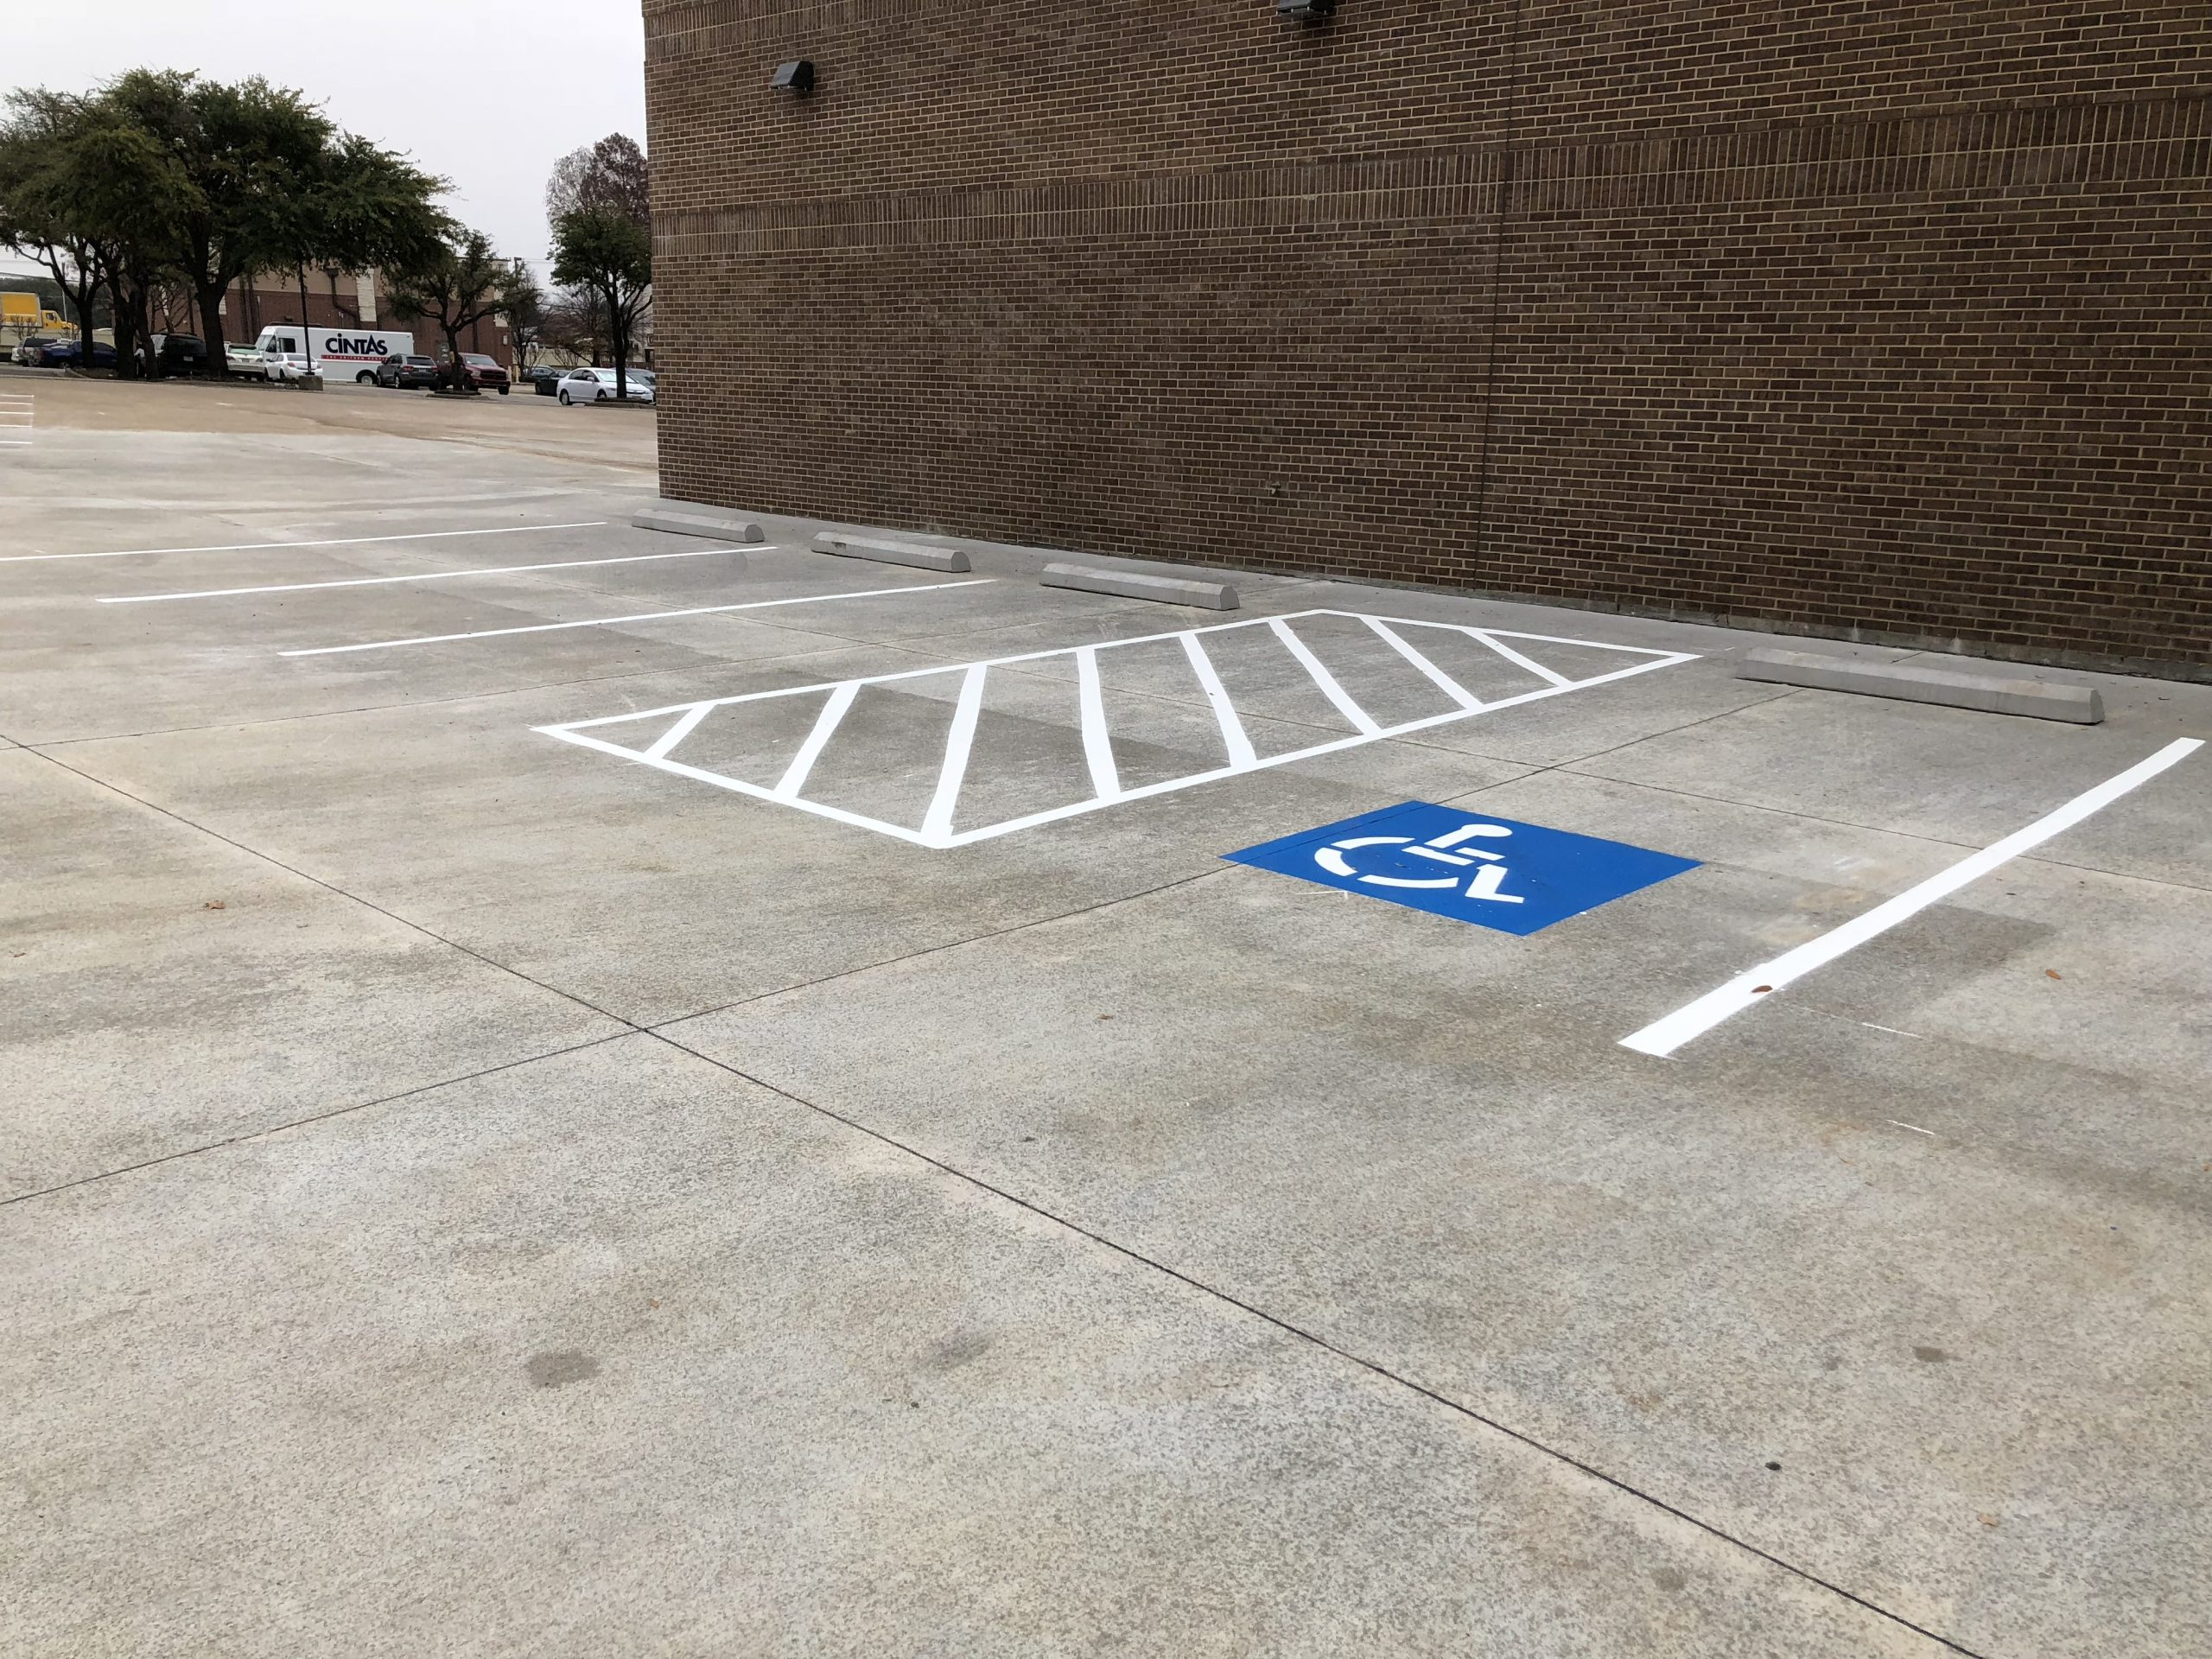 parking lot striping dallas tx commercial best company services near me texas parking lot striping company pictures 1.jpg